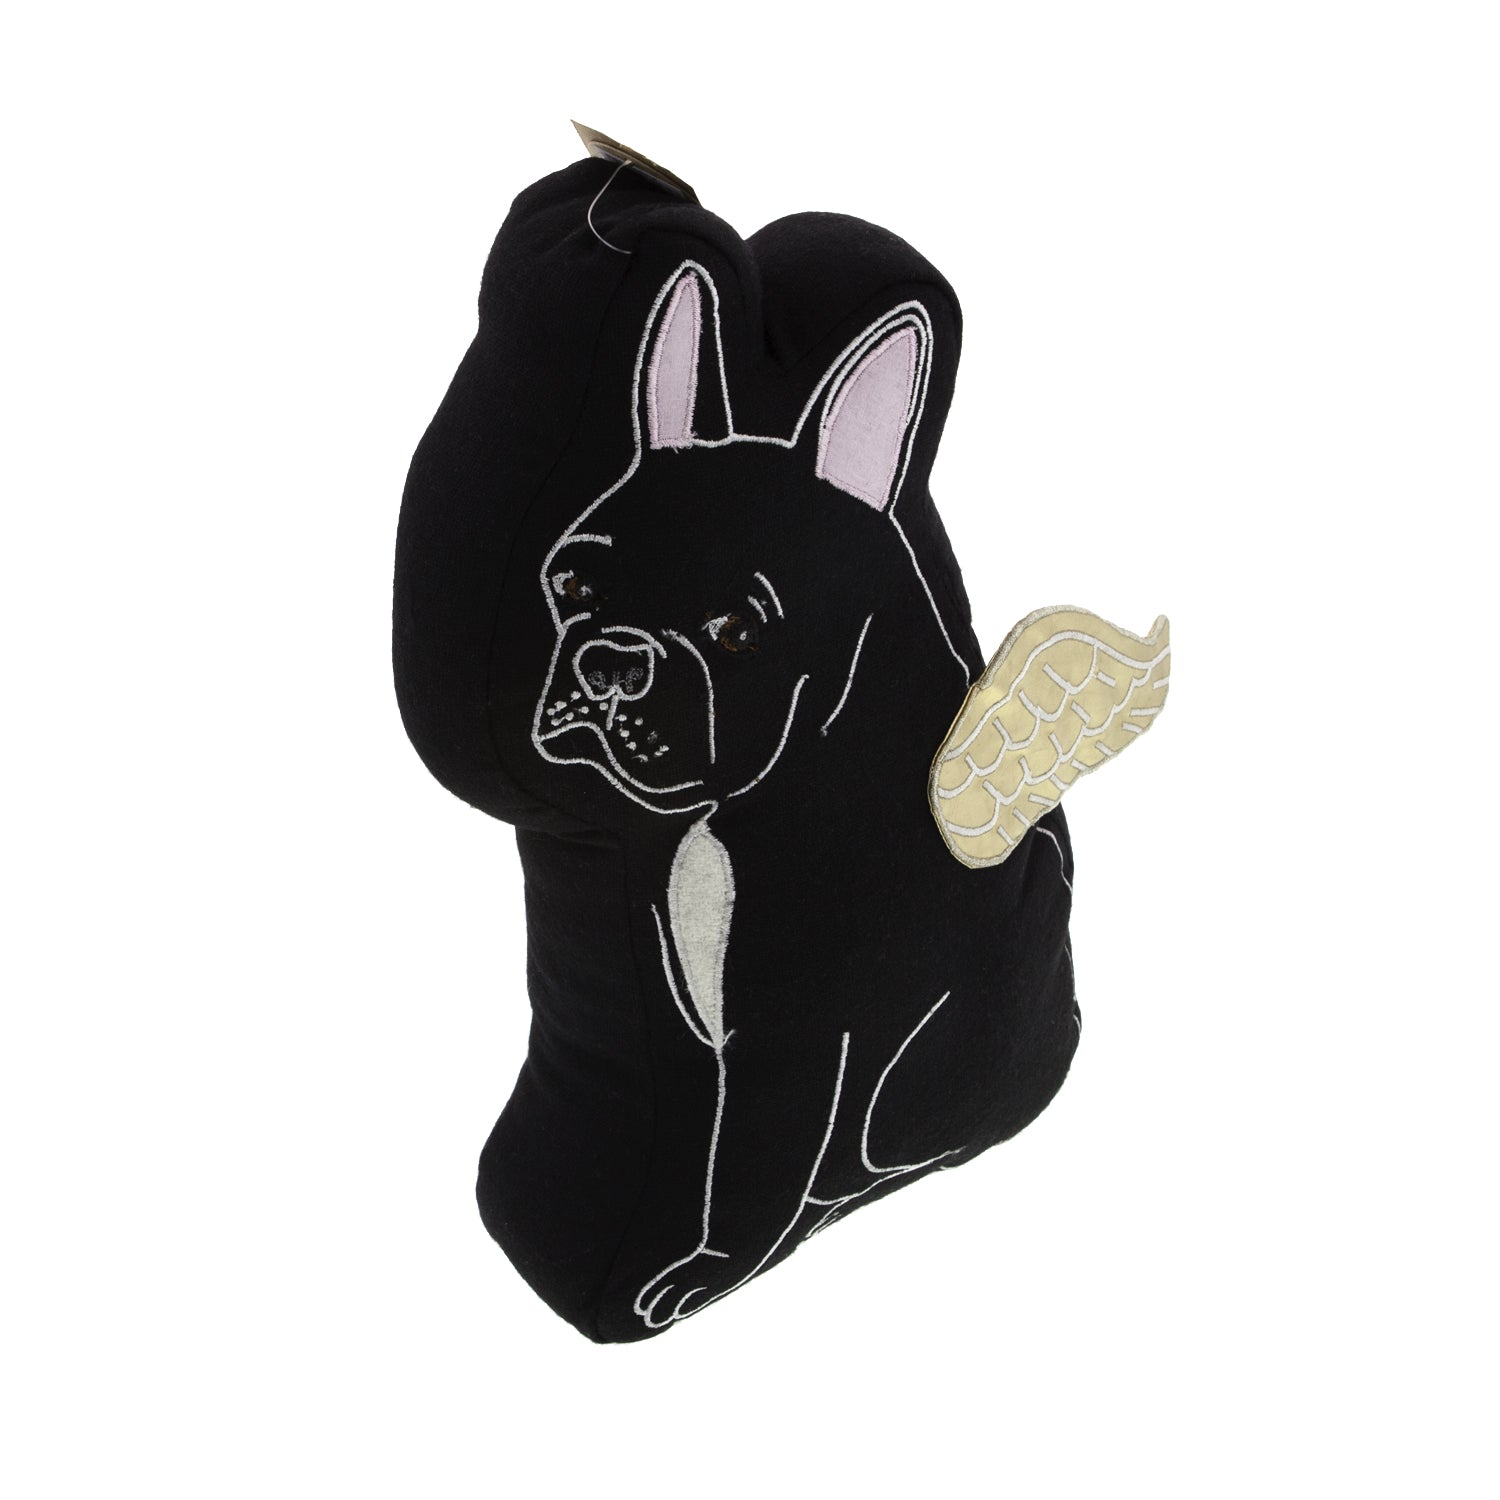 Dog Lover Gifts available at Dog Krazy Gifts  – Black French Bulldog Cushion – Gorgeously detailed and handcrafted luxury cushions part of the French Bulldog Range available from Dog Krazy Gift